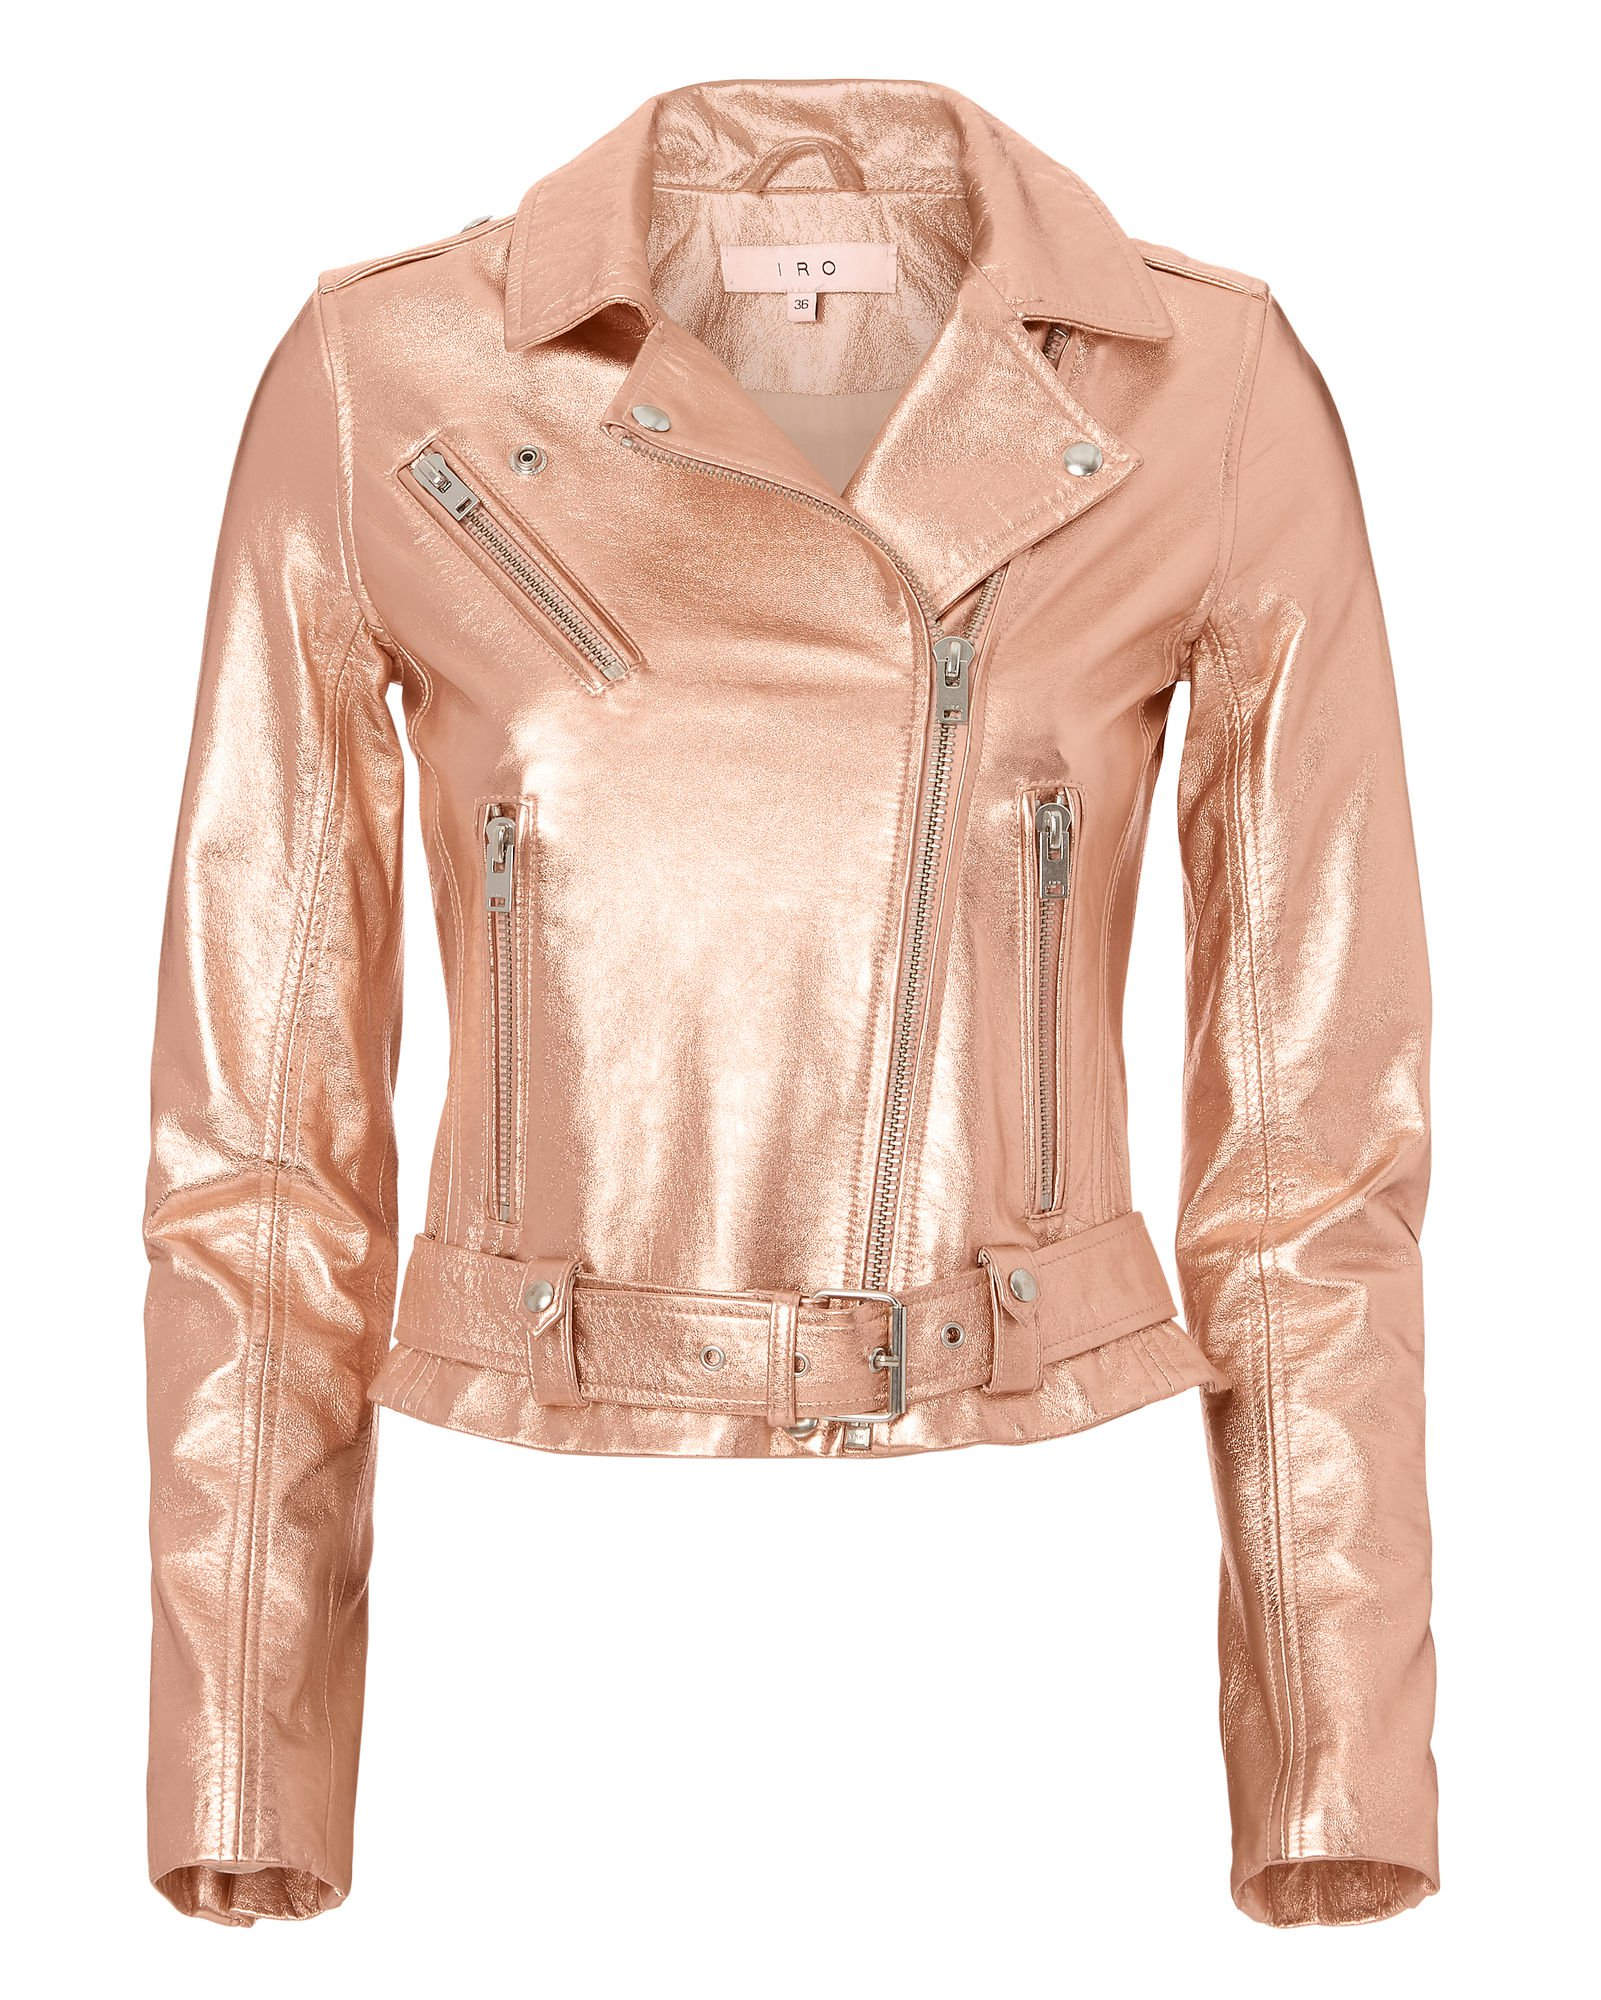 rose-gold-jacket